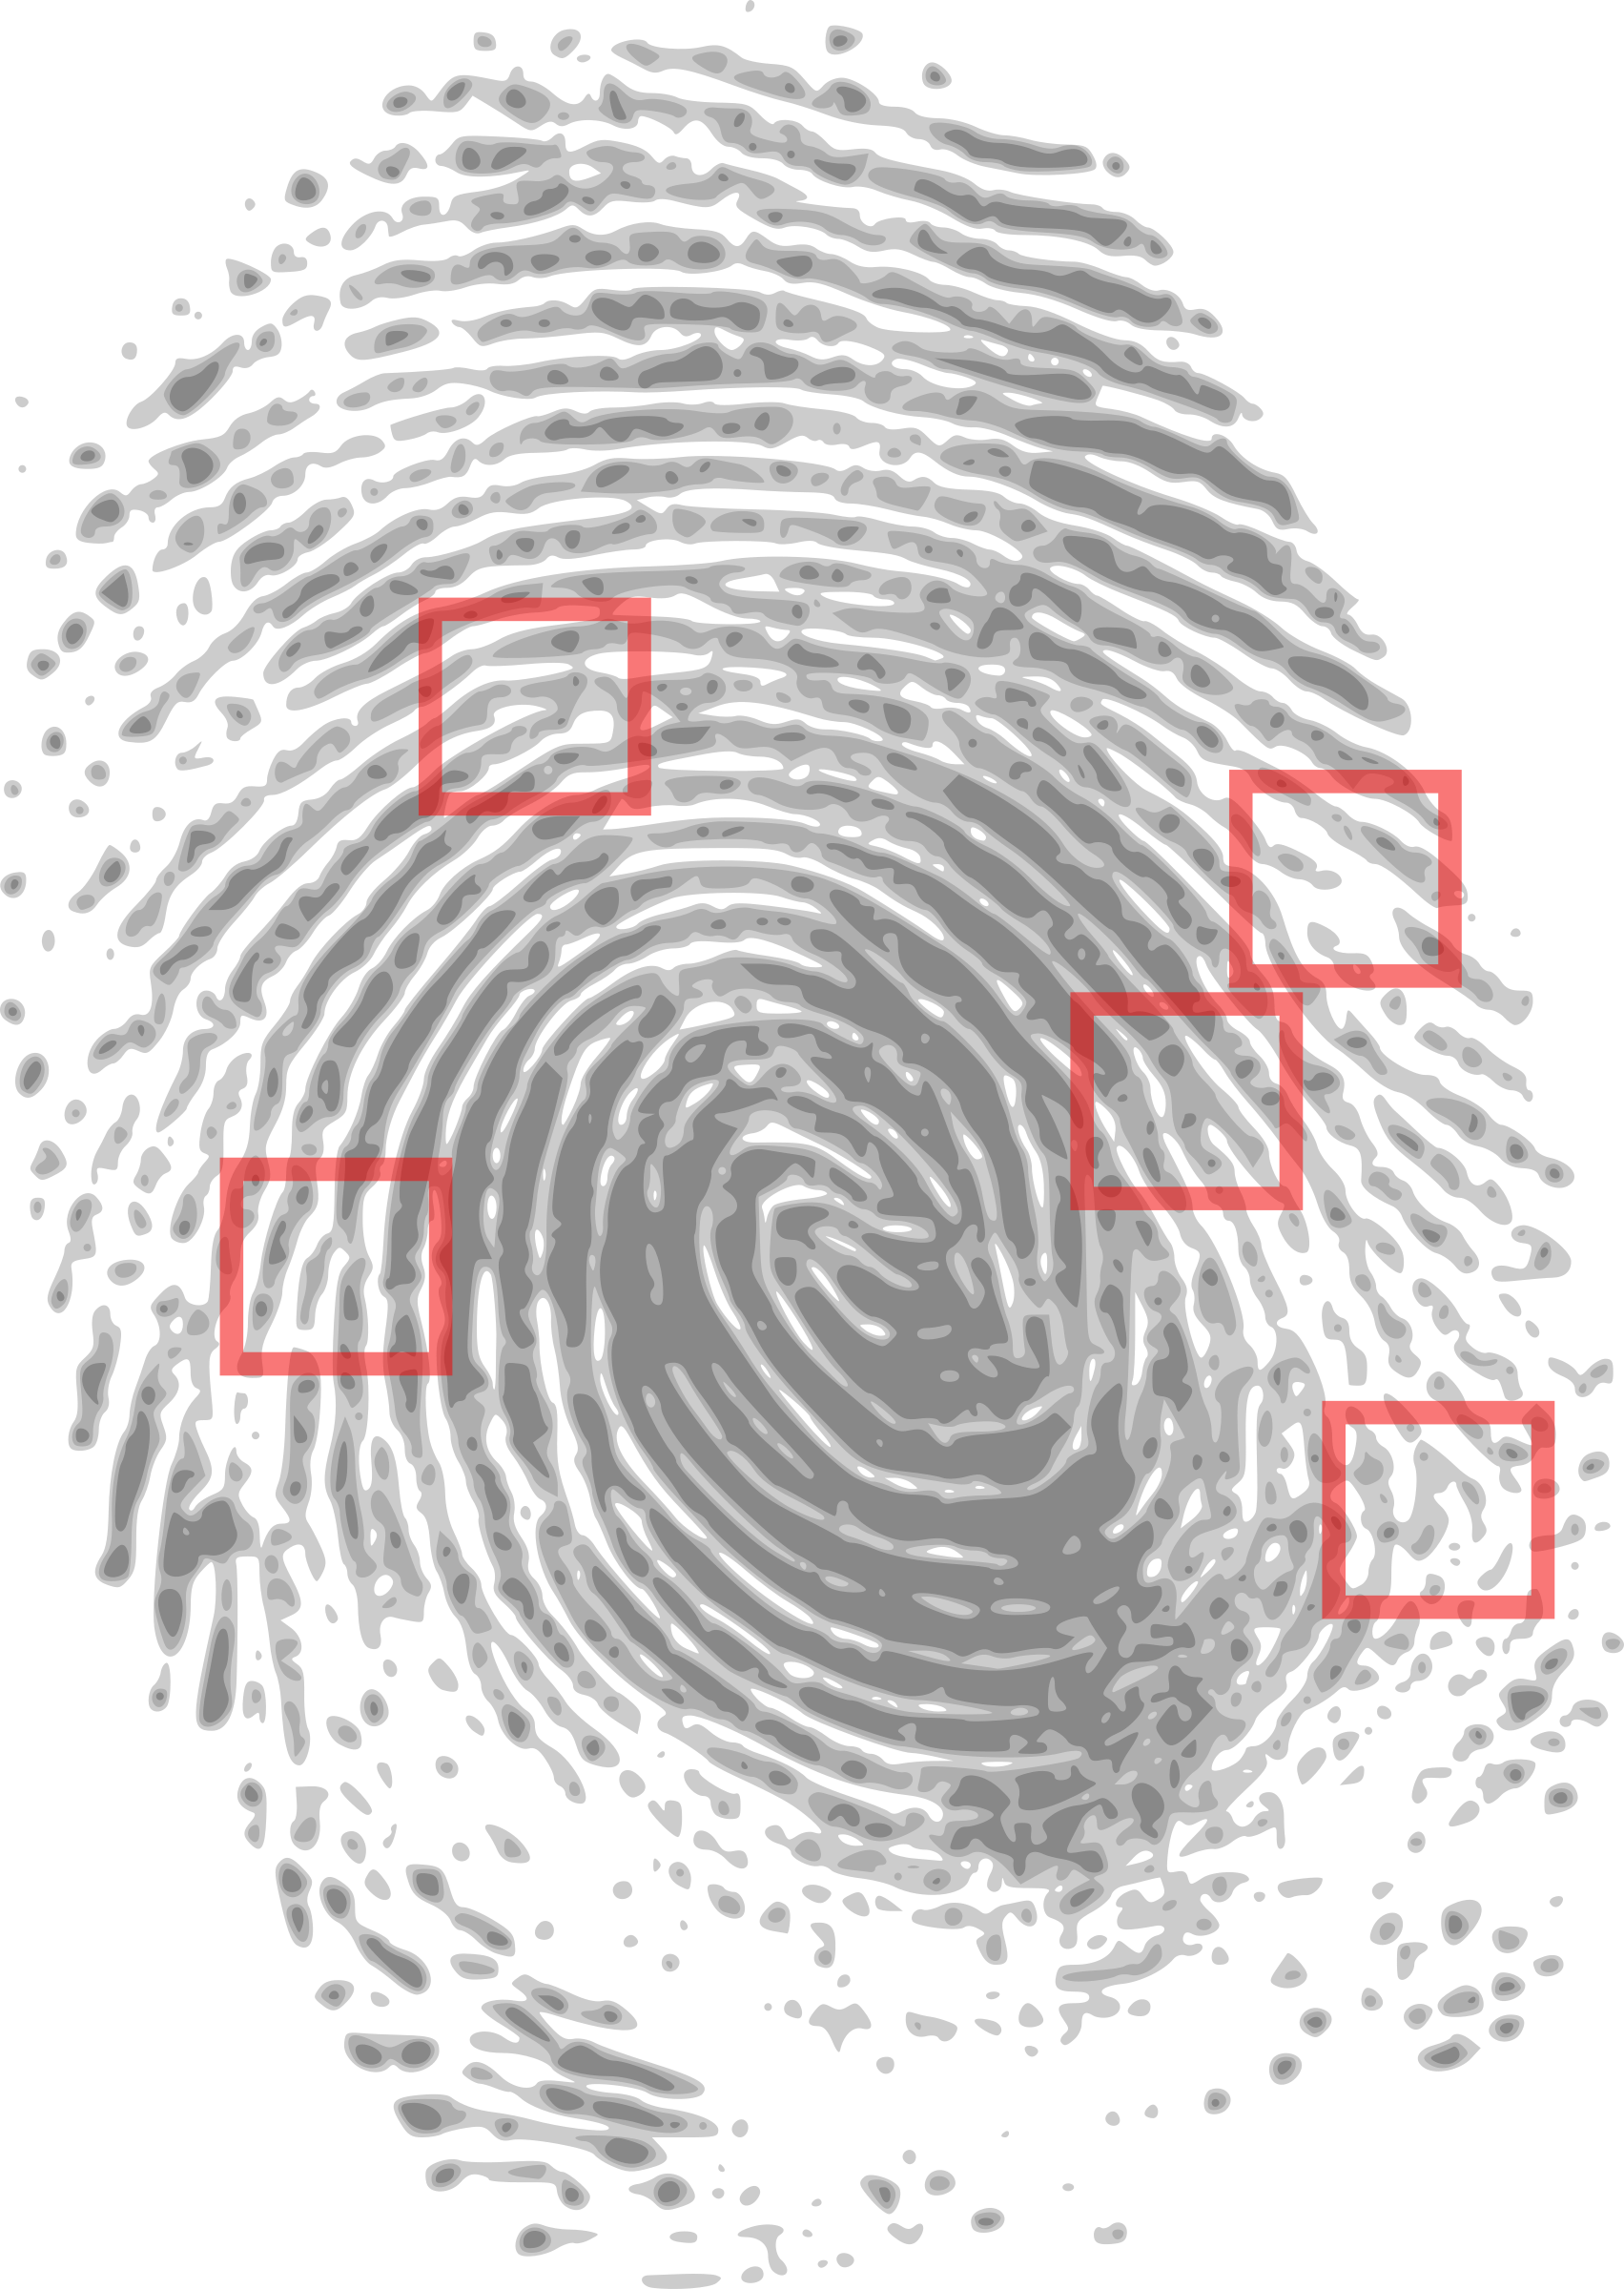 svg freeuse library Big image png. Fingerprint clipart clear background.